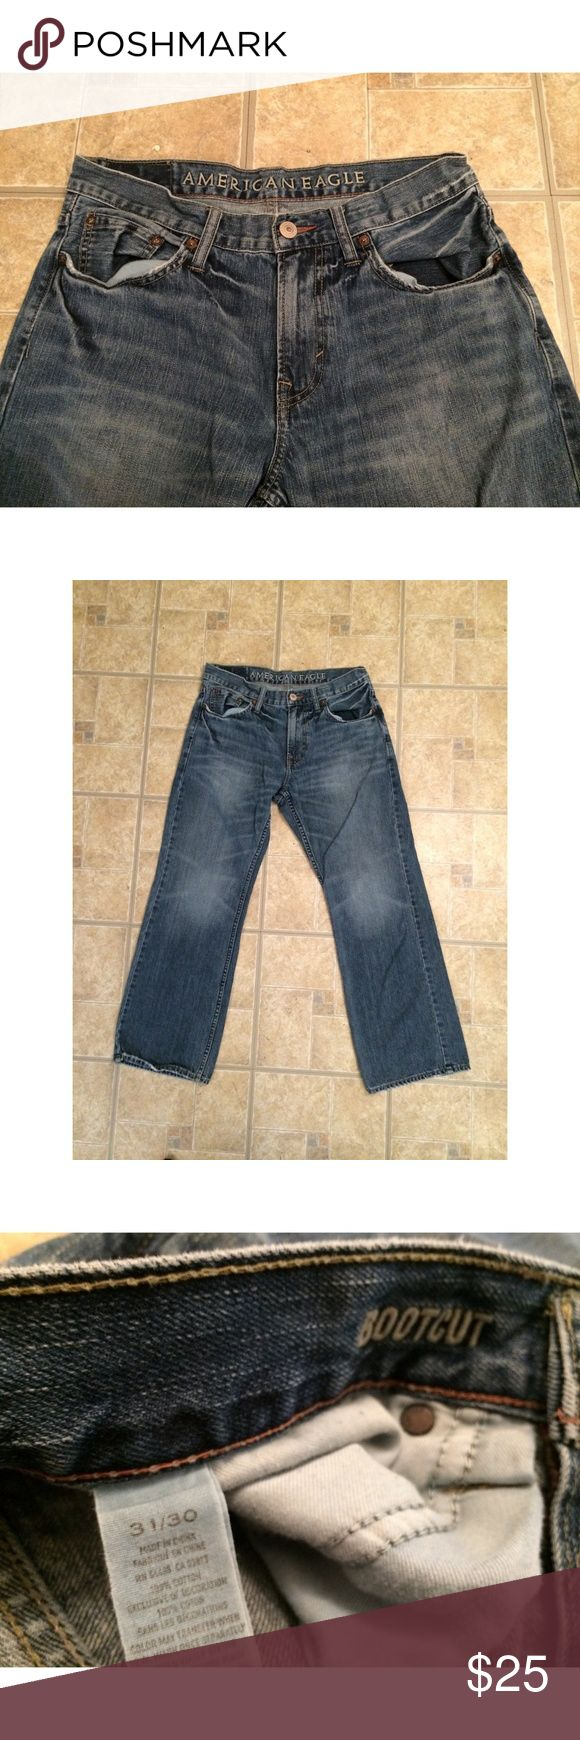 American Eagle Jeans for Men Pre-Owned, Bootcut American Eagle jeans for Men. Size 31/30, Lightwash Denim. American Eagle Outfitters Jeans Bootcut